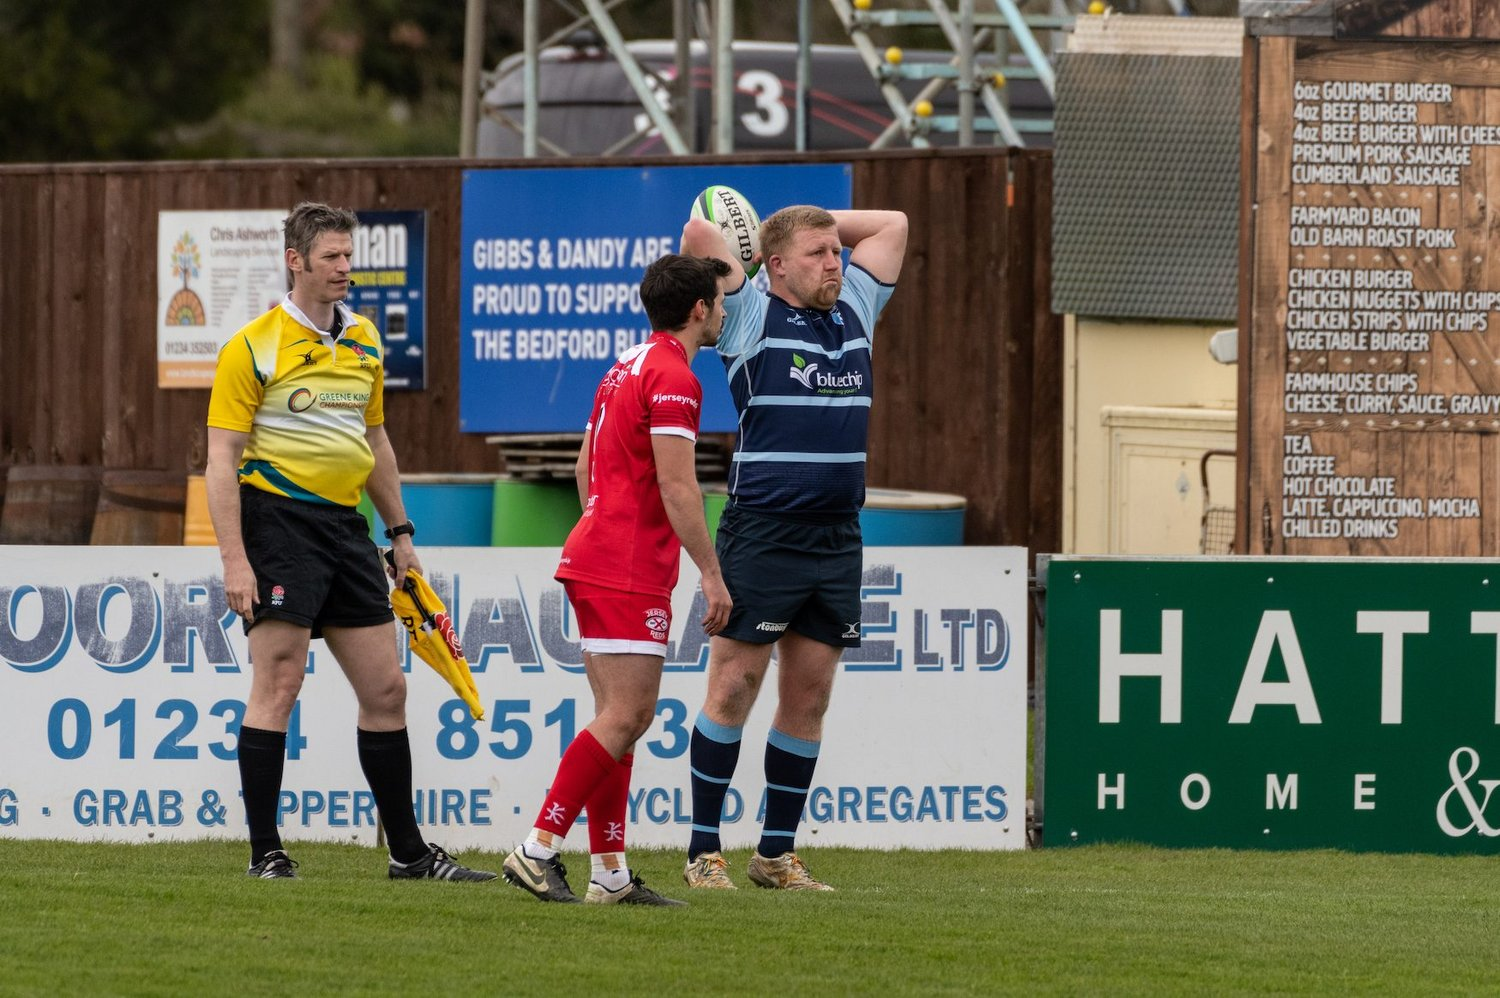 Saints' James Fish prepares to throw a lineout for Bedford Blues